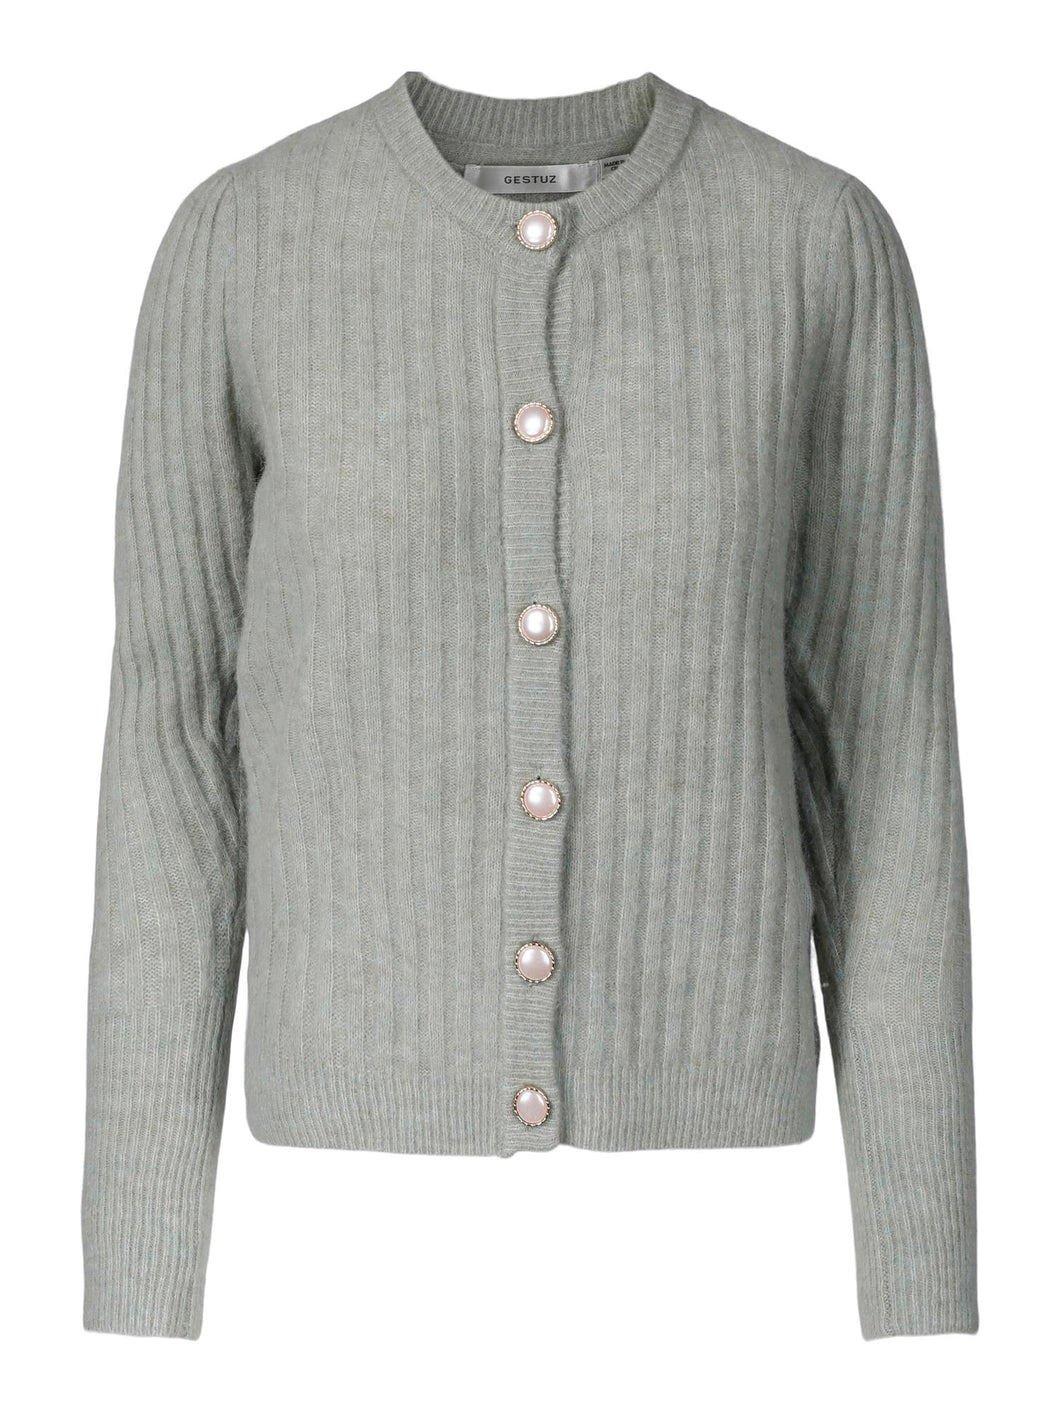 AlpiaGZ puff cardigan